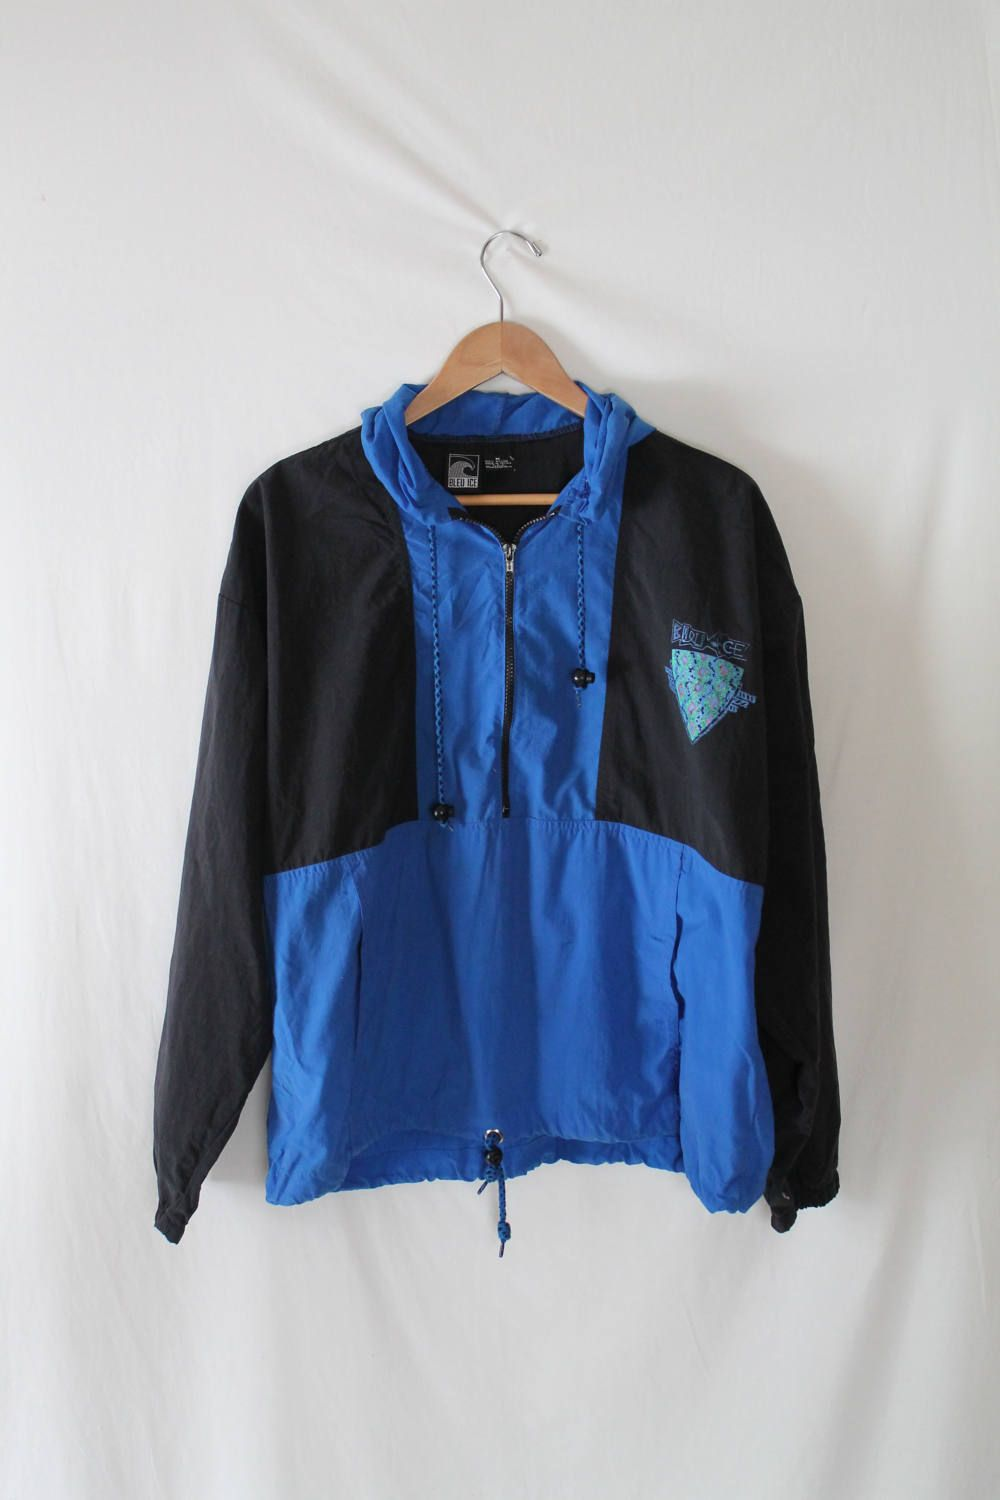 90s BLEU ICE Pullover Windbreaker // Blue and Black Color Block ...